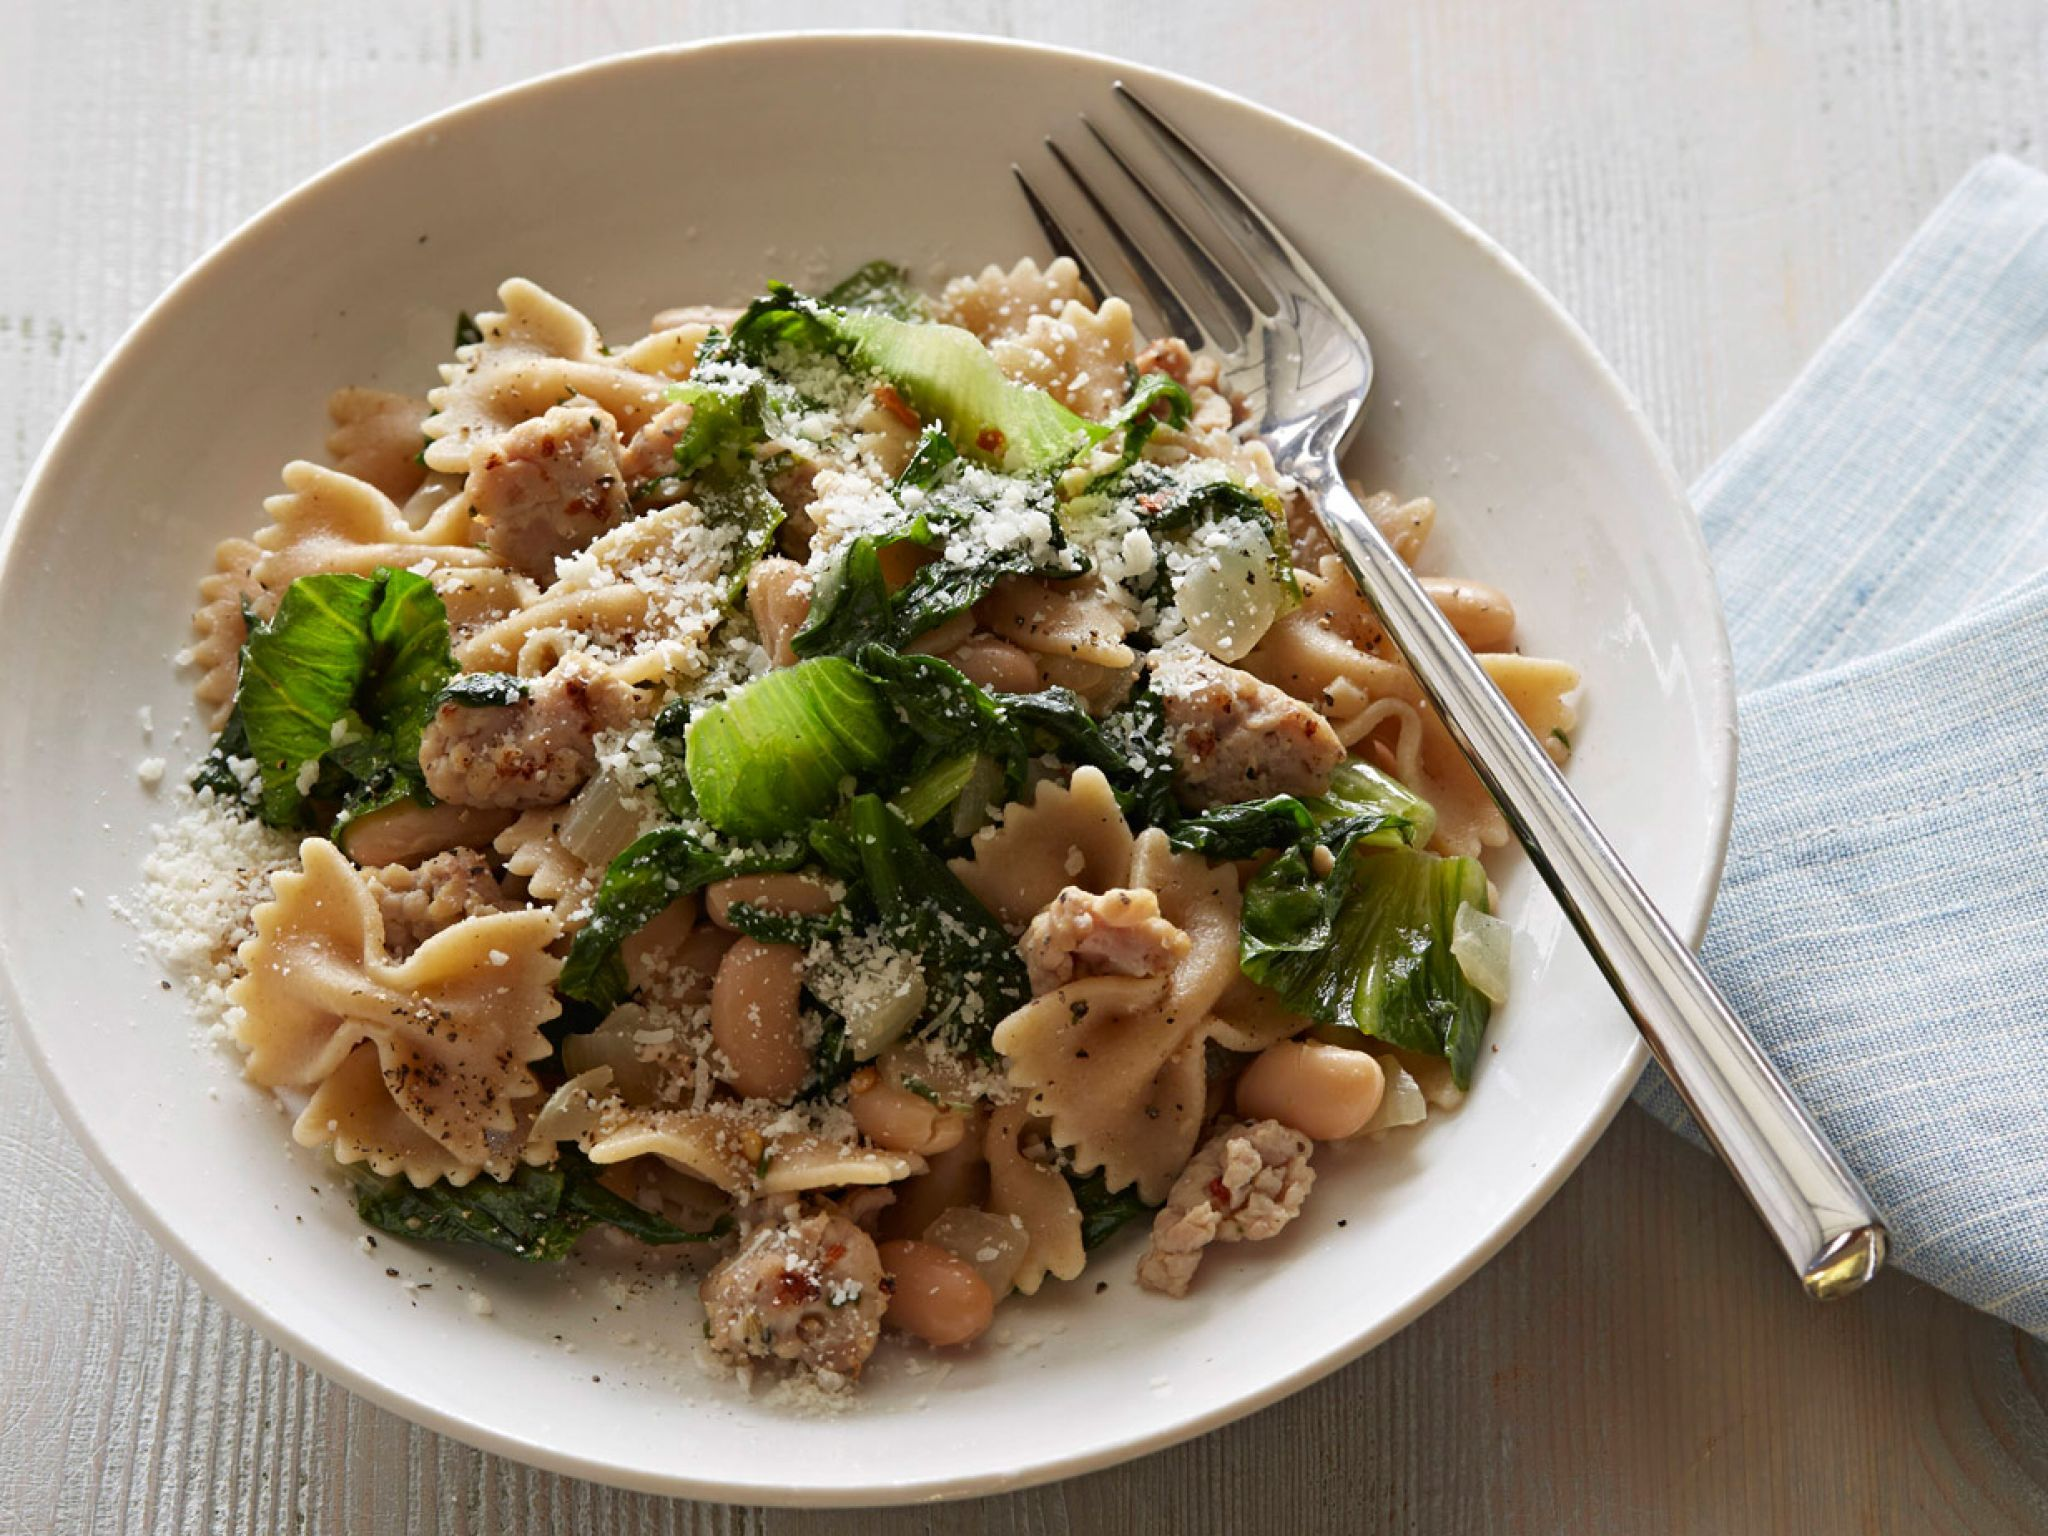 Pasta with escarole white beans and chicken sausage recipe pasta with escarole white beans and chicken sausage recipe chicken sausage recipes chicken sausage and white beans forumfinder Choice Image